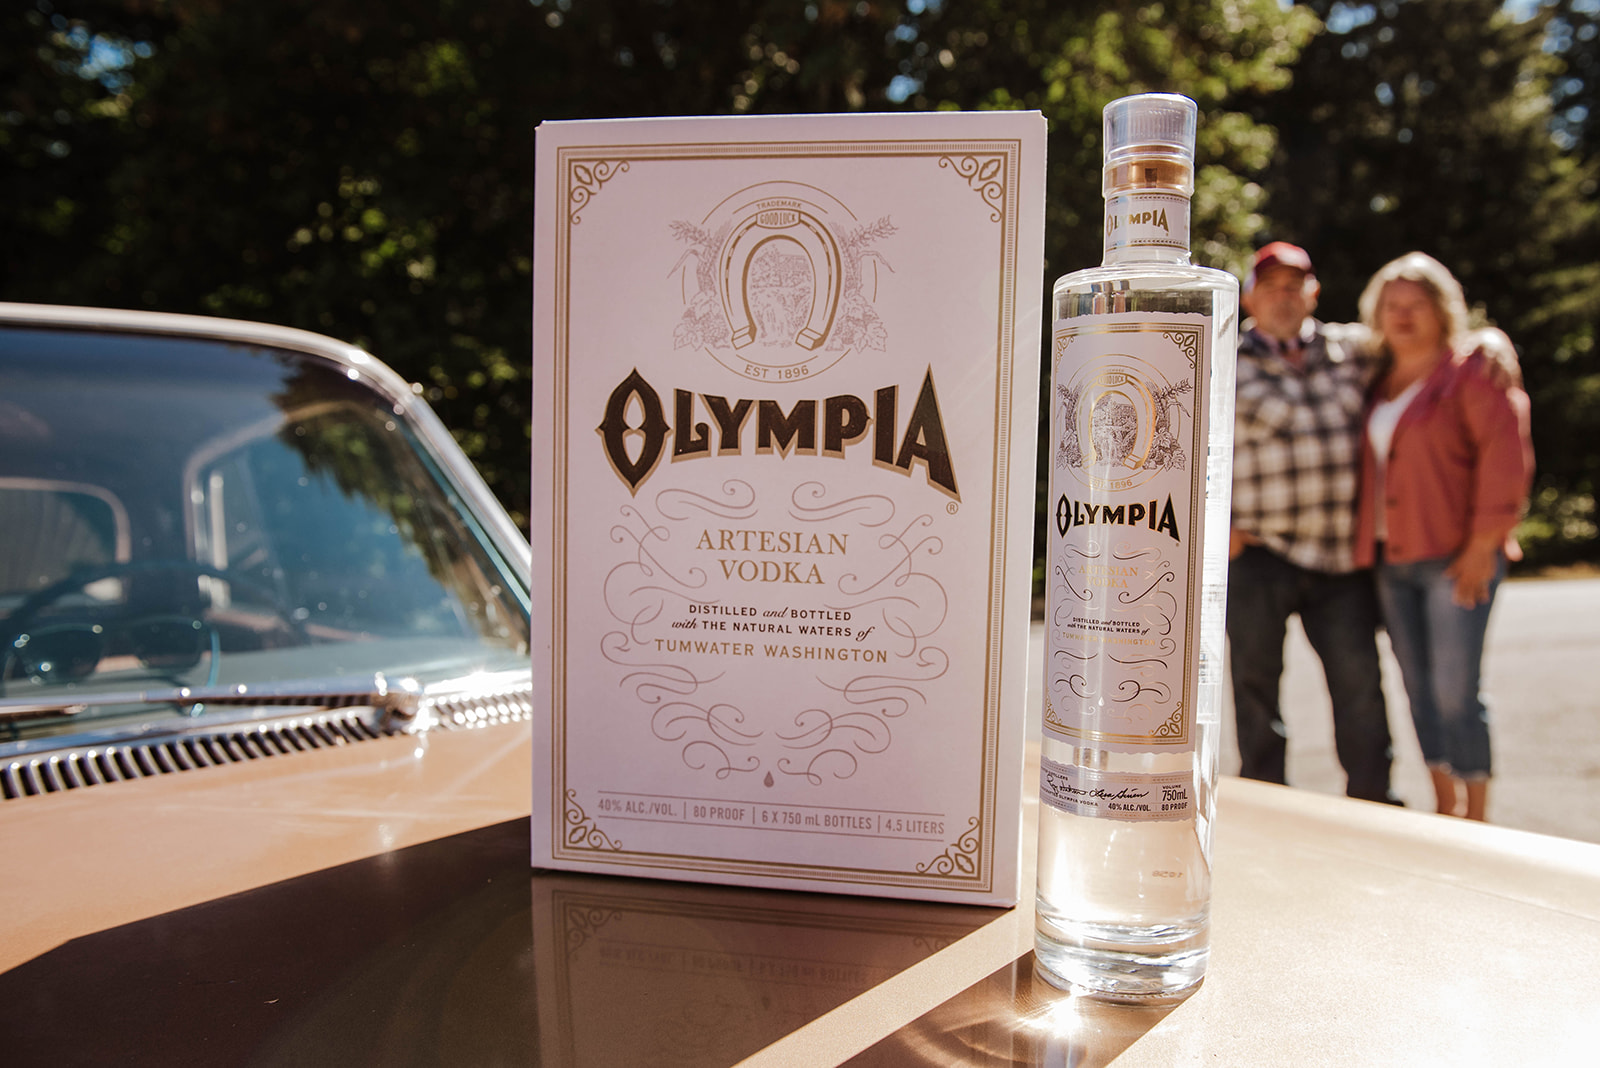 Olympia Artesian Vodka distilled in Tumwater, WA. (image courtesy of Sarah Russell)